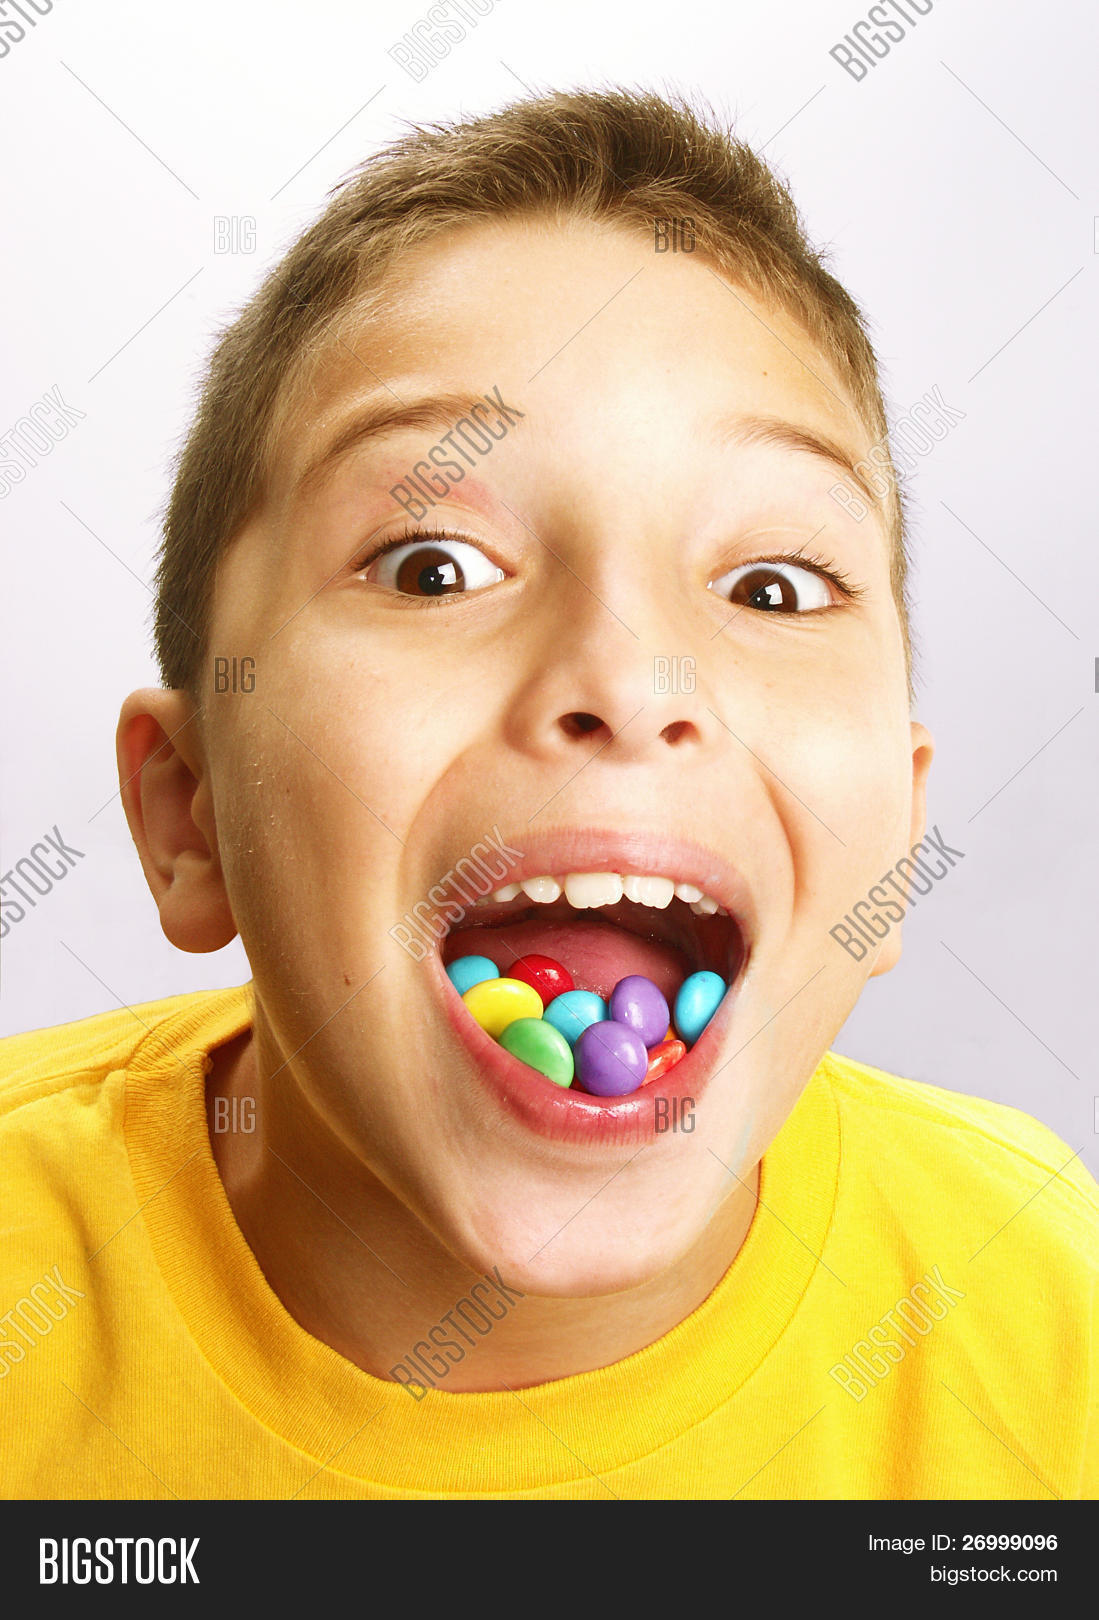 little boy eating image & photo (free trial) | bigstock